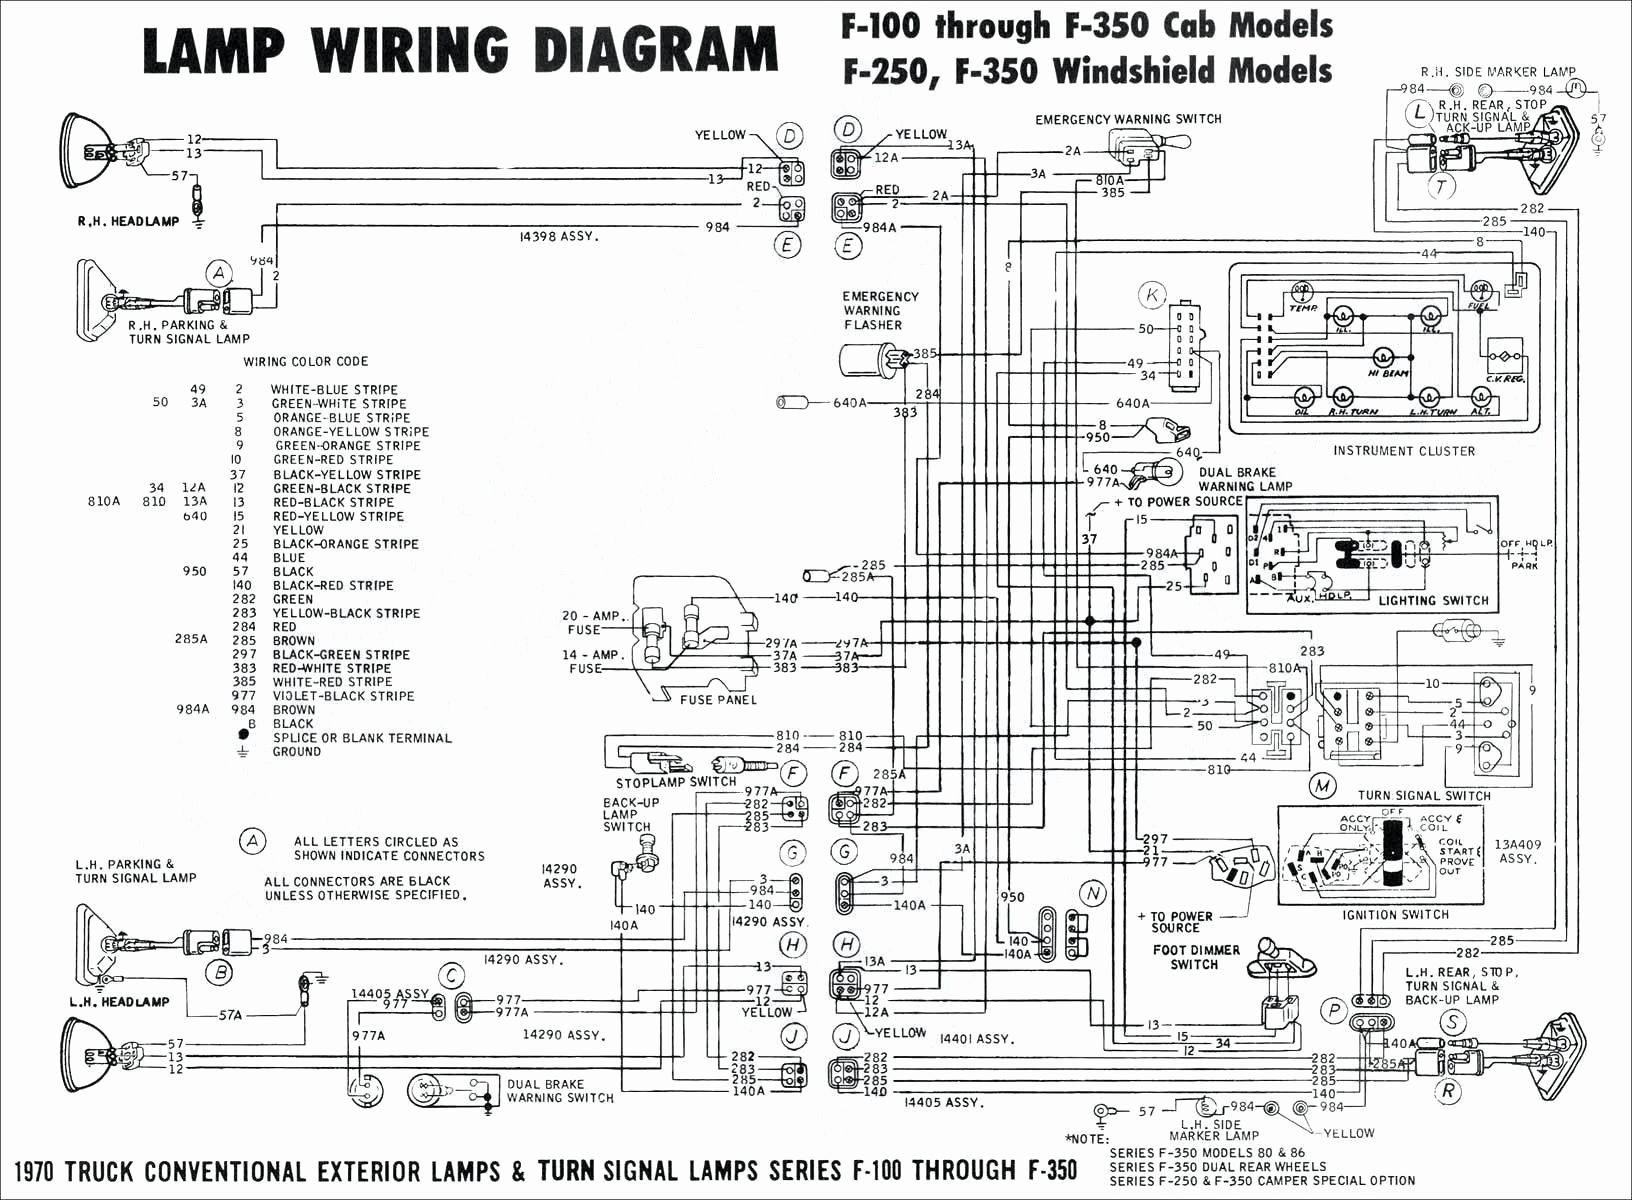 gage rampampr spreadsheet for john deere 4020 wiring diagram fuel gauge then gage rampr spreadsheet